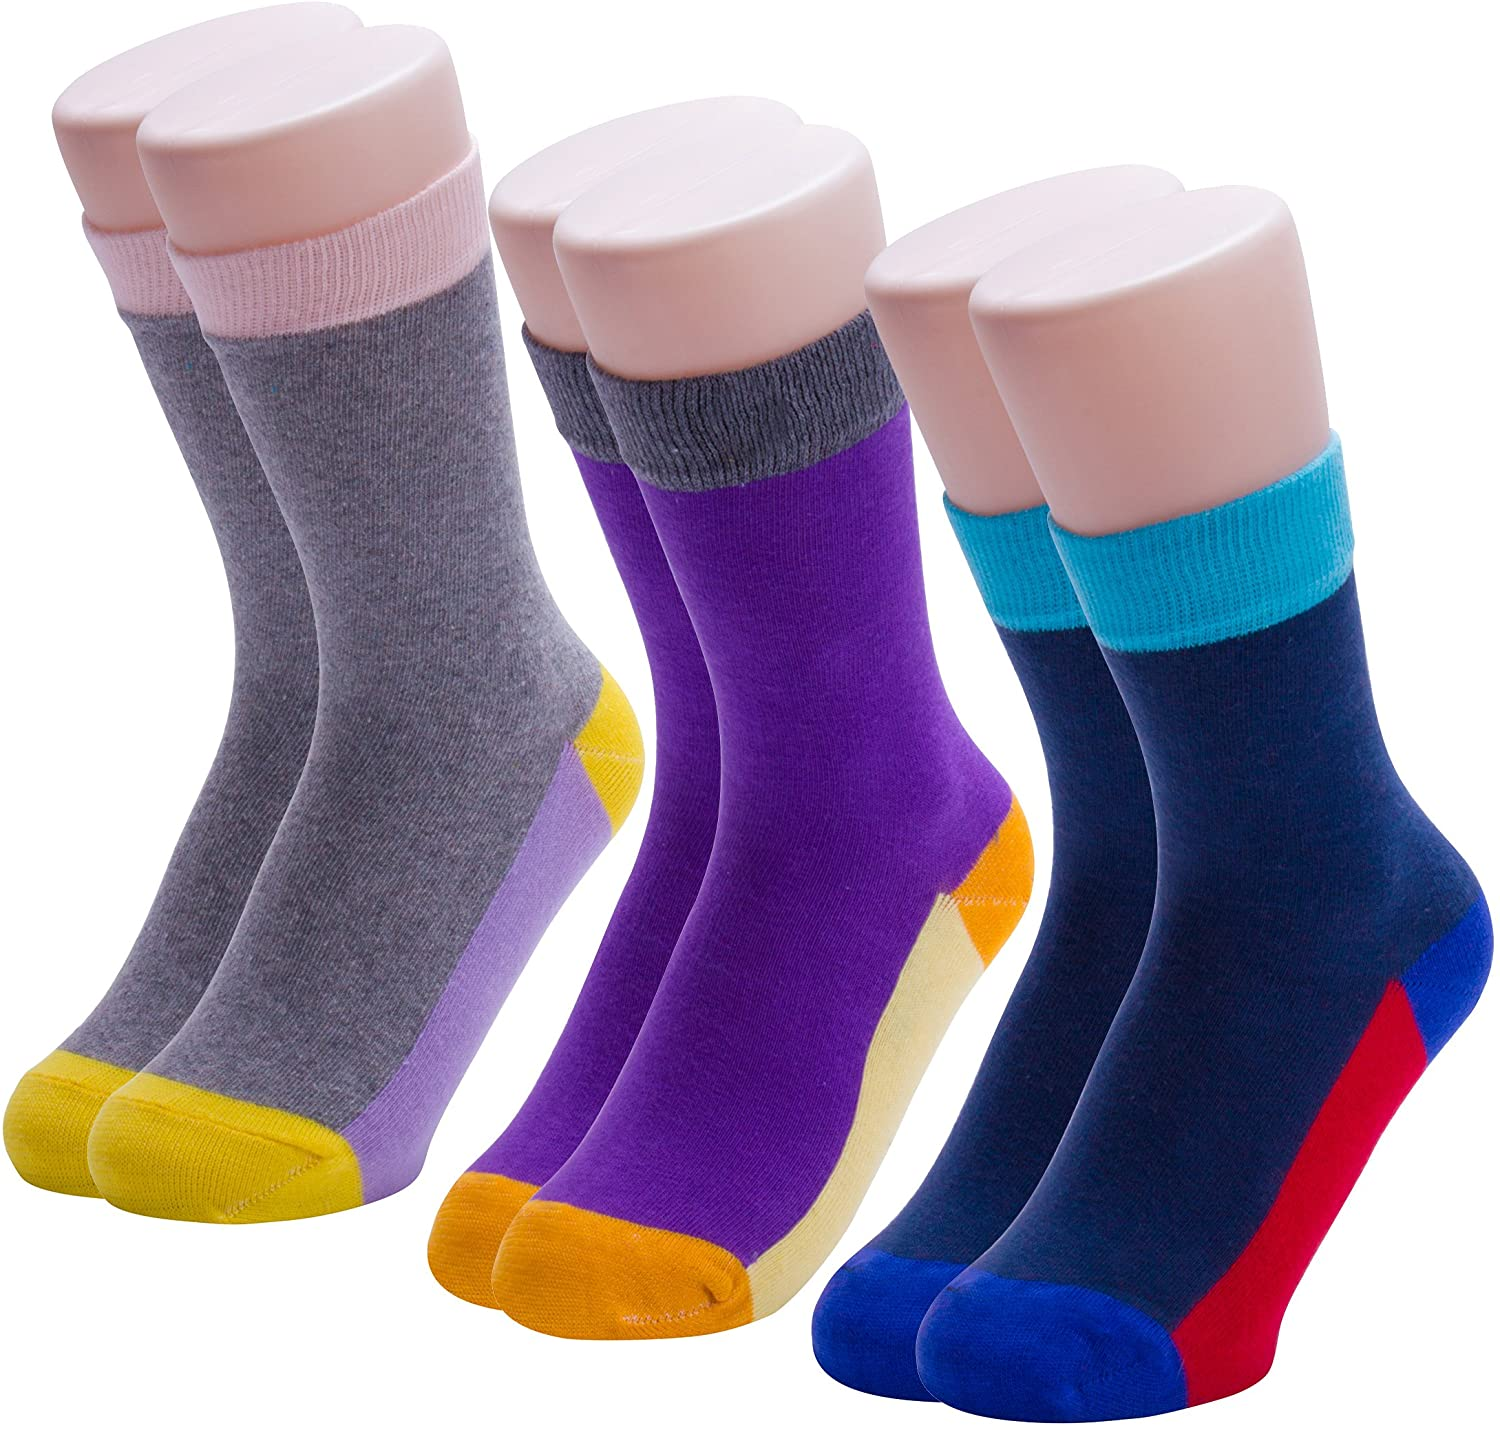 AdoBella Women Dress Crew Socks Mid Calf Length Casual Formal Cotton